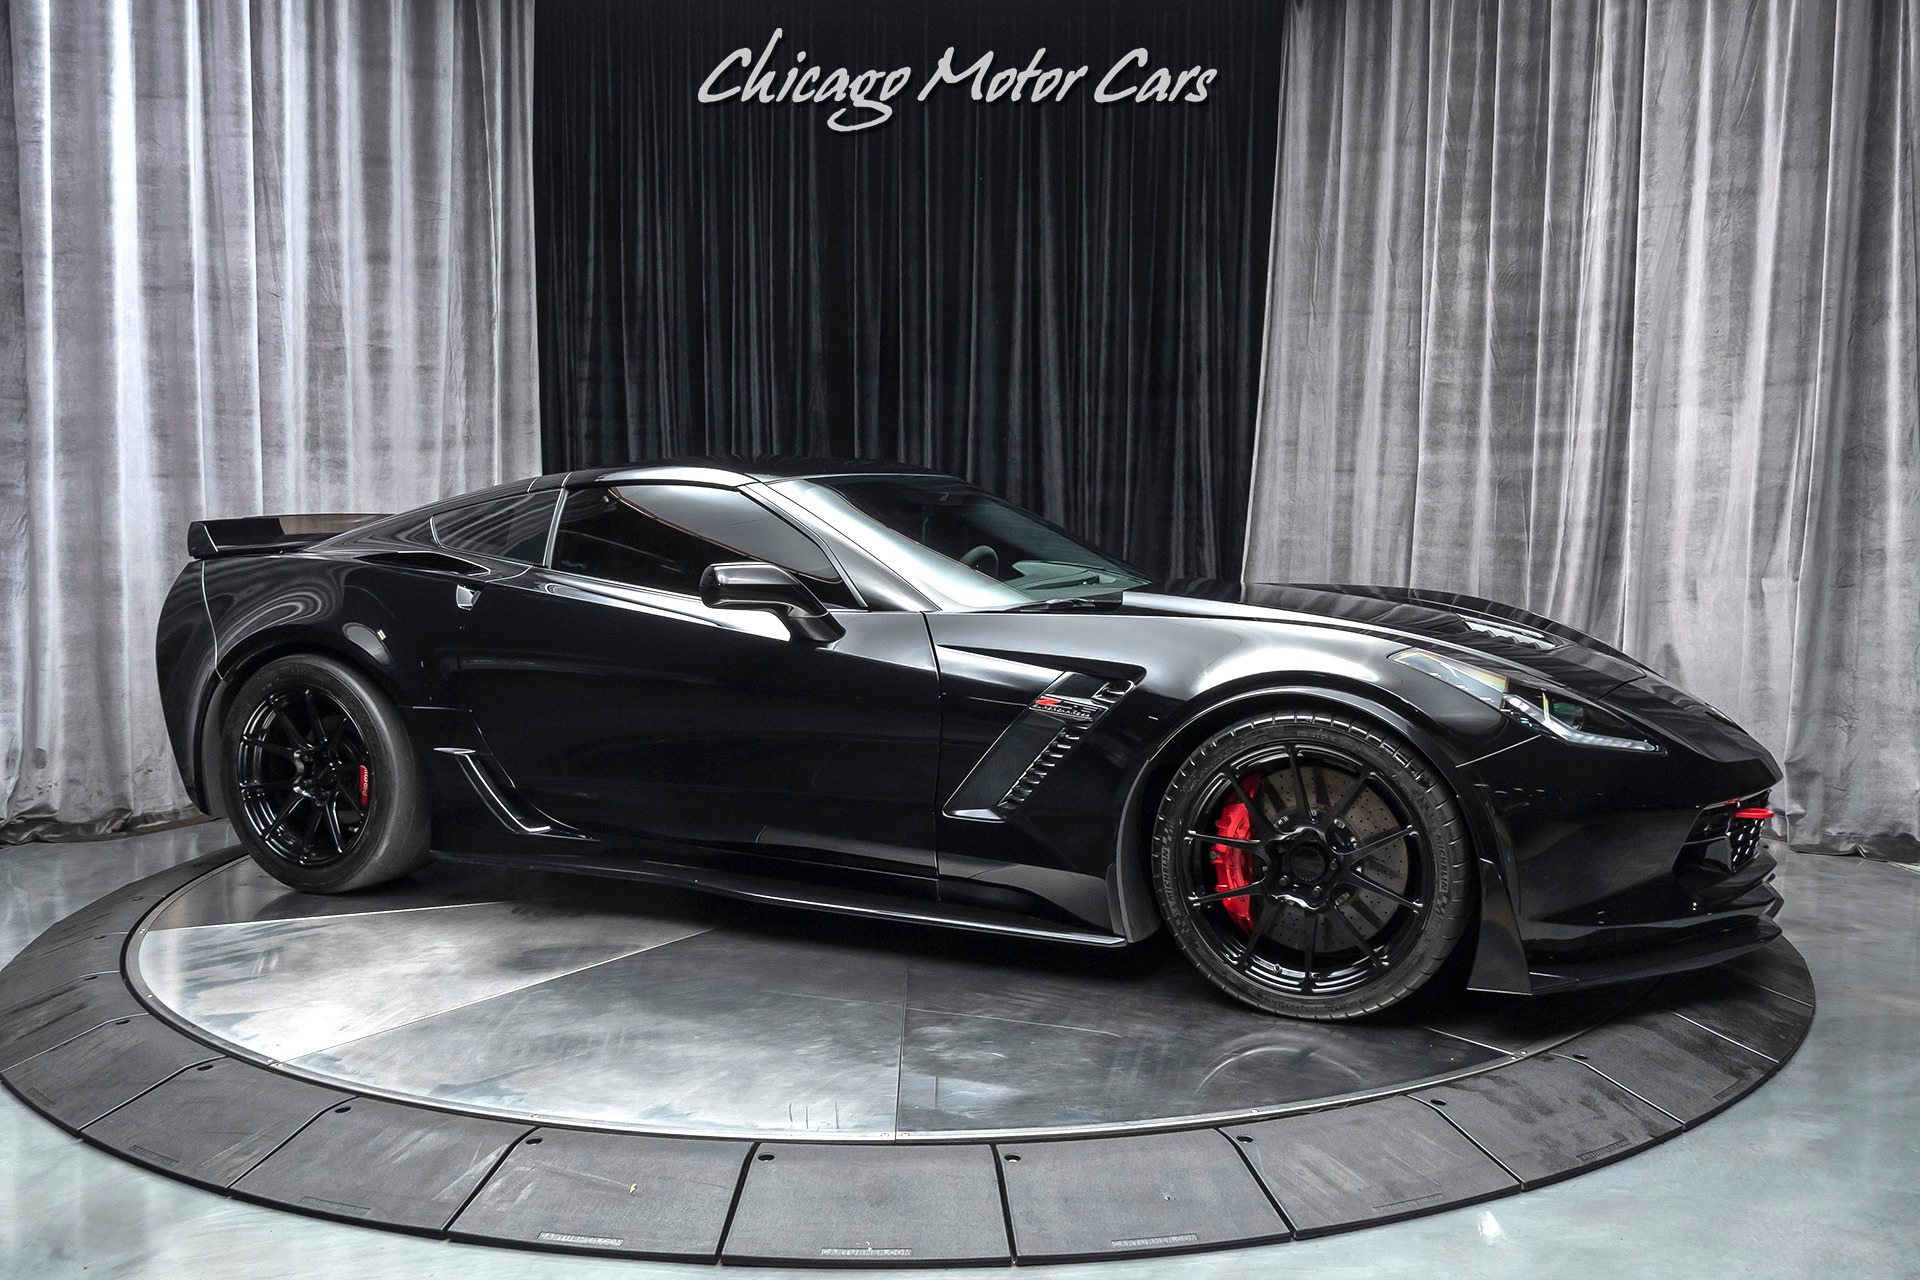 Used-2015-Chevrolet-Corvette-Z06-3LZ-1400HP-LME-416-F1X-Procharger